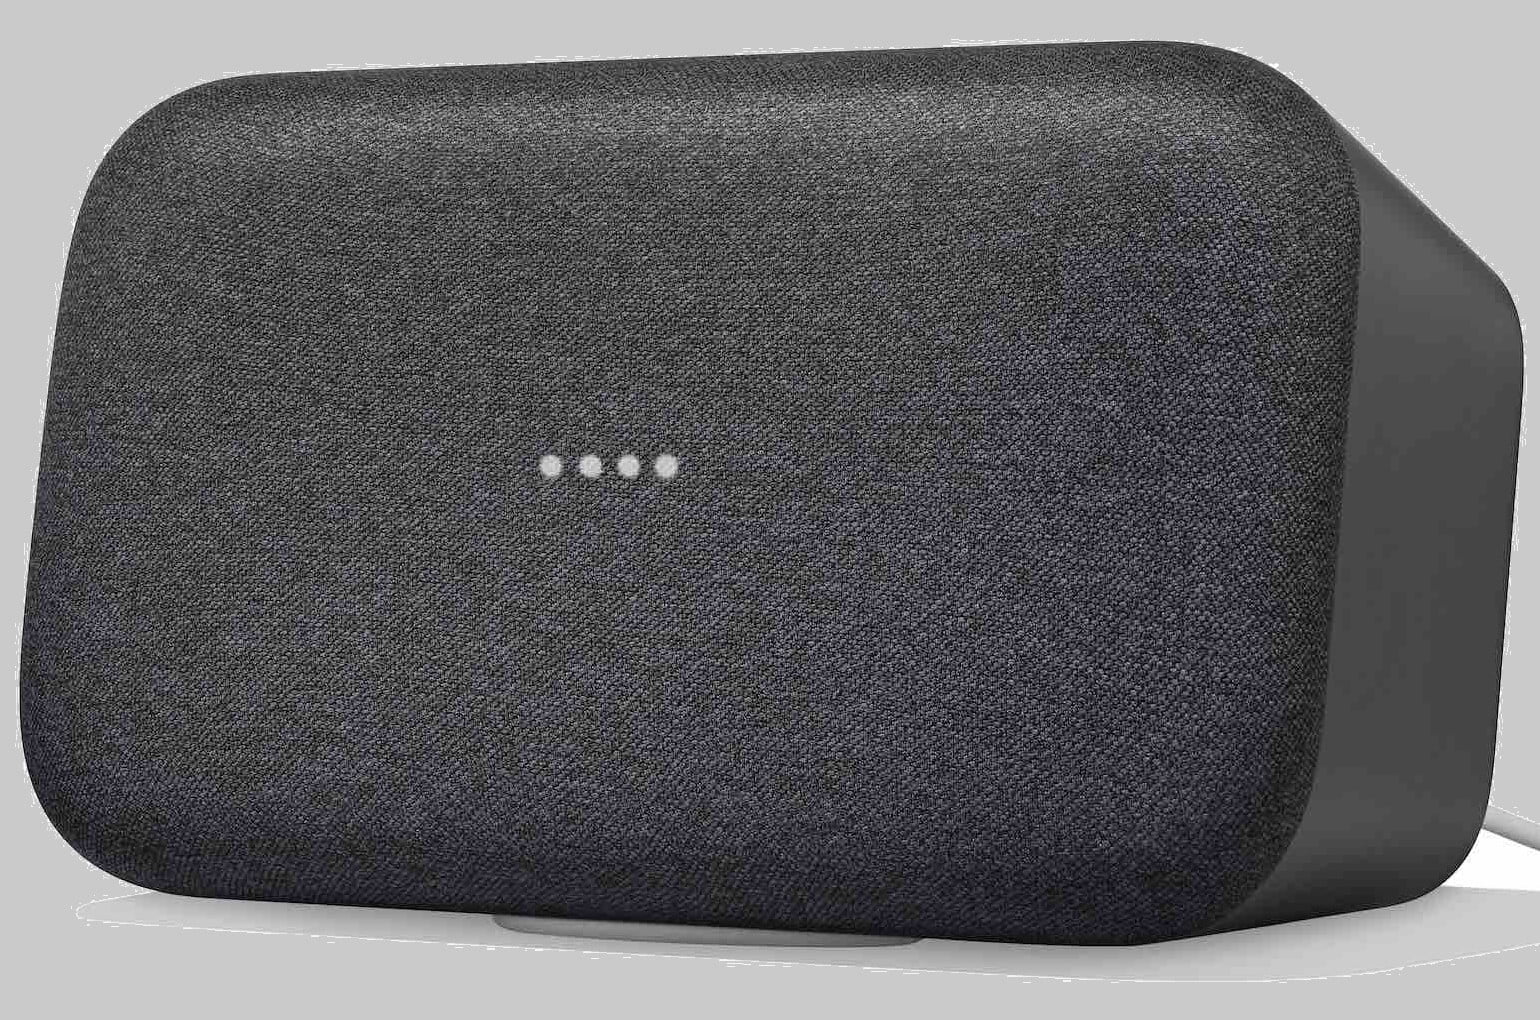 walmart slashes prices on all original google nest home devices max 0